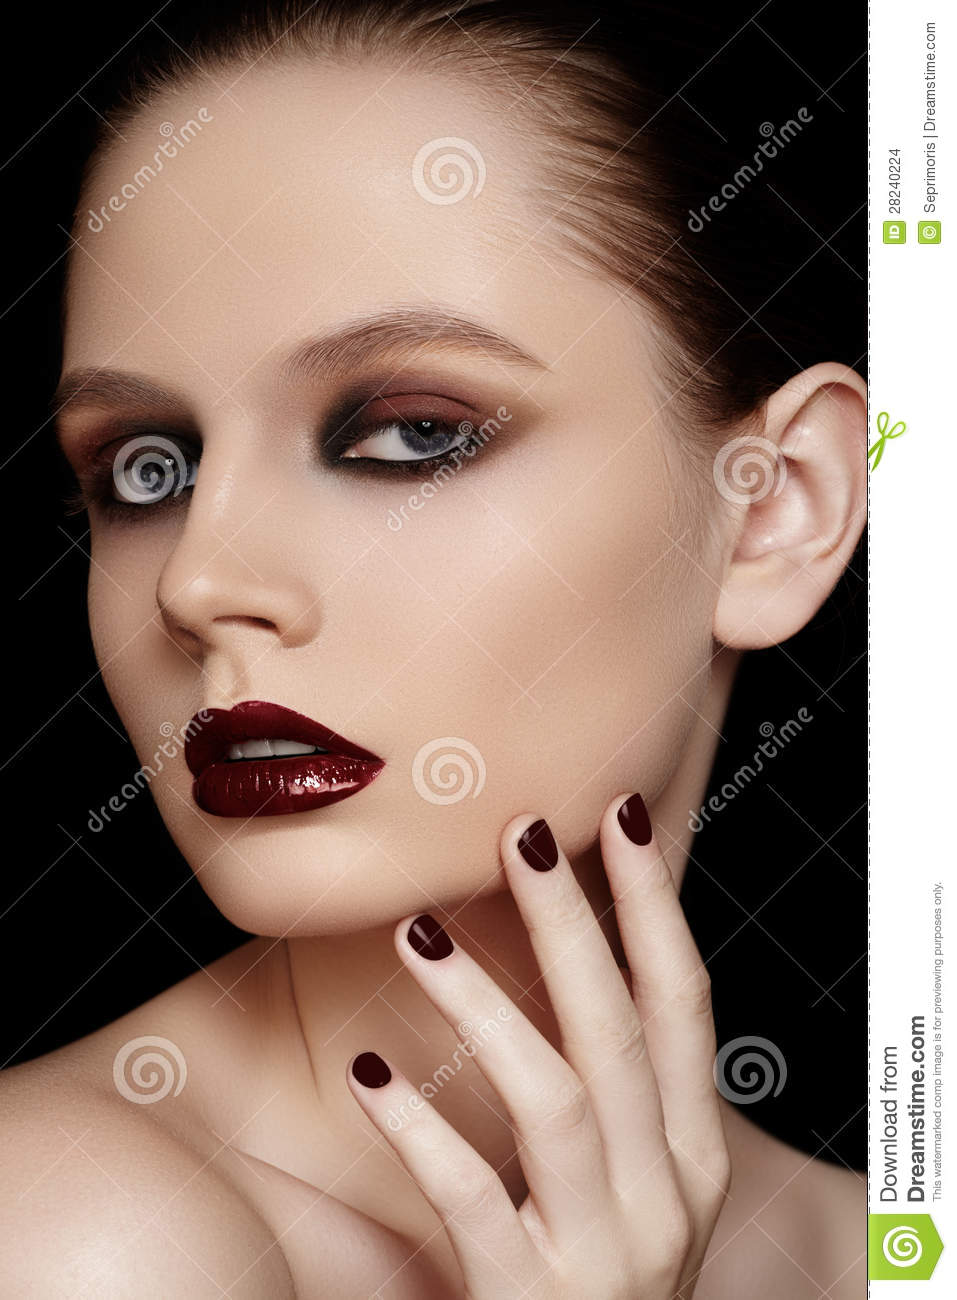 Fashion Model With Maroon Manicure, Make-up Stock Photo